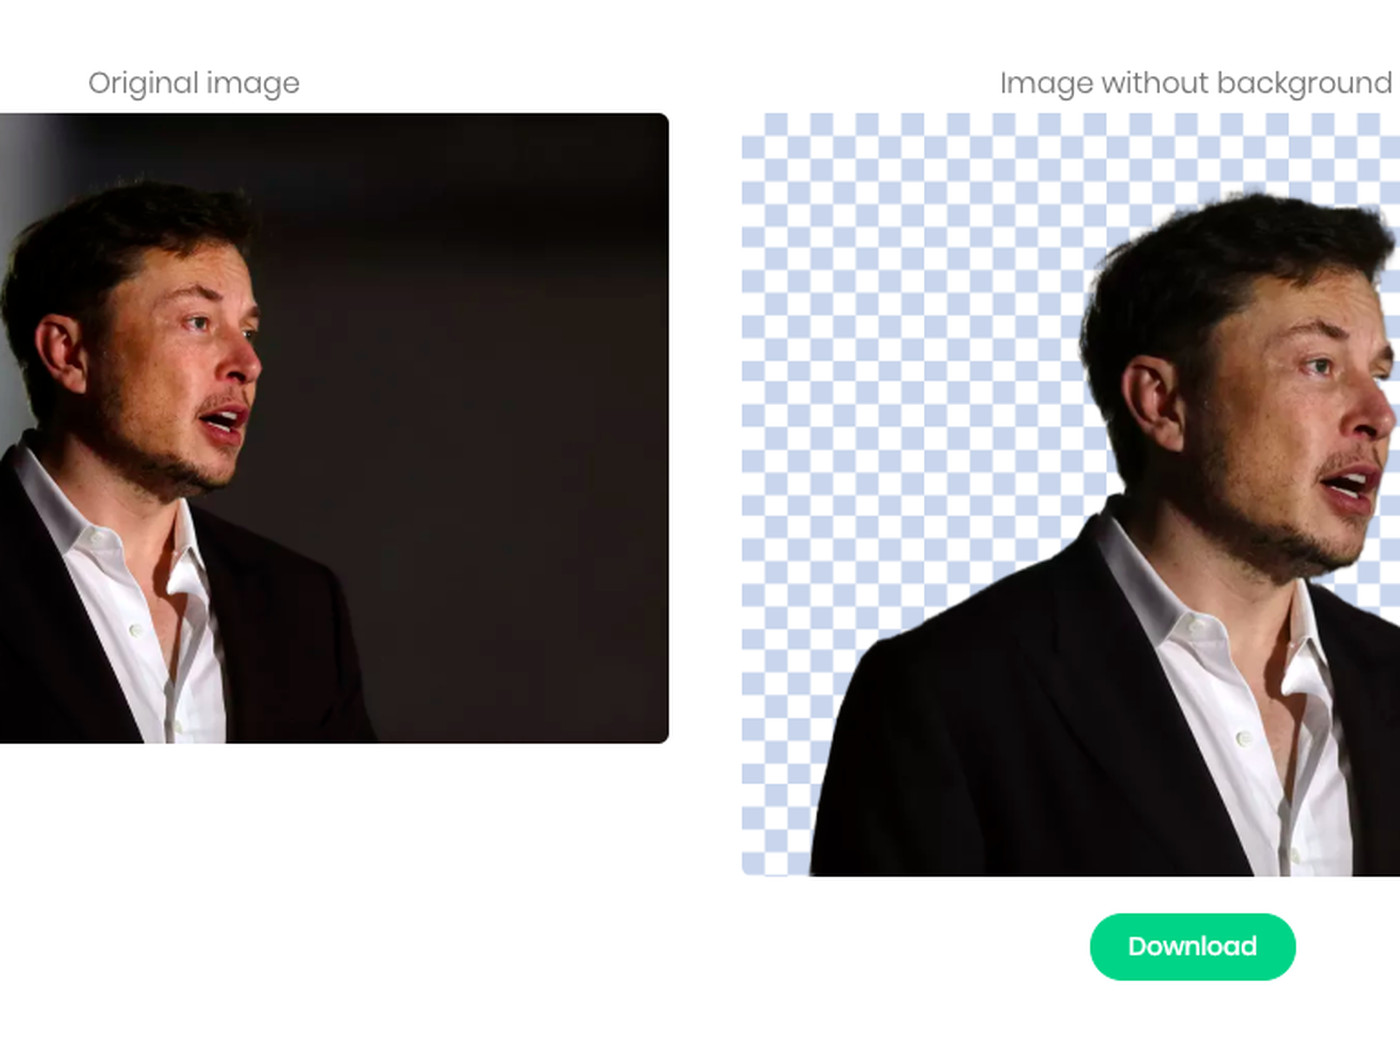 This free online tool uses AI to quickly remove the background from.